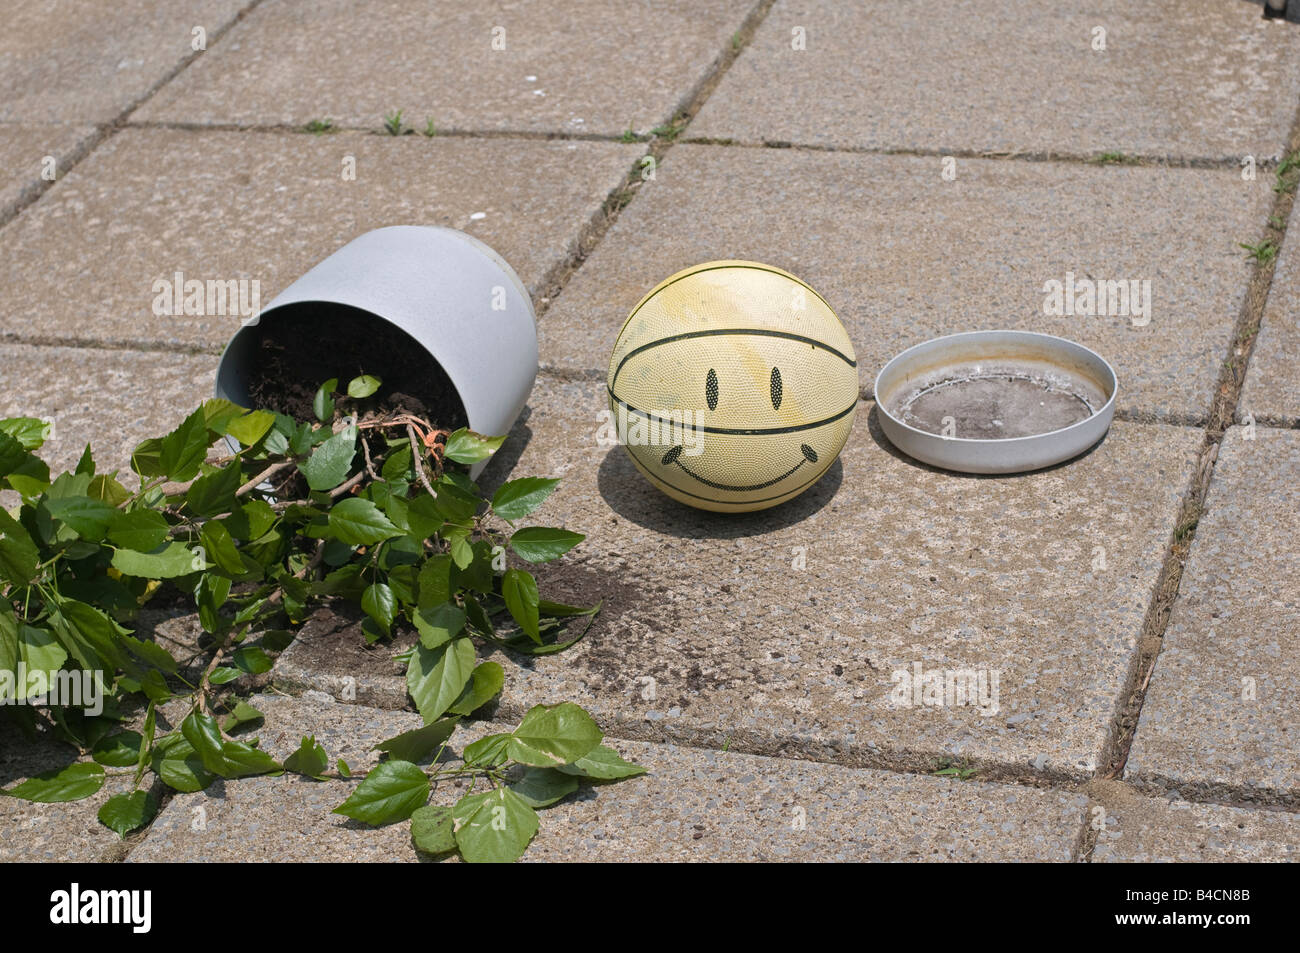 Flowerpot with plant smashed down on the paved ground by a ball. - Stock Image